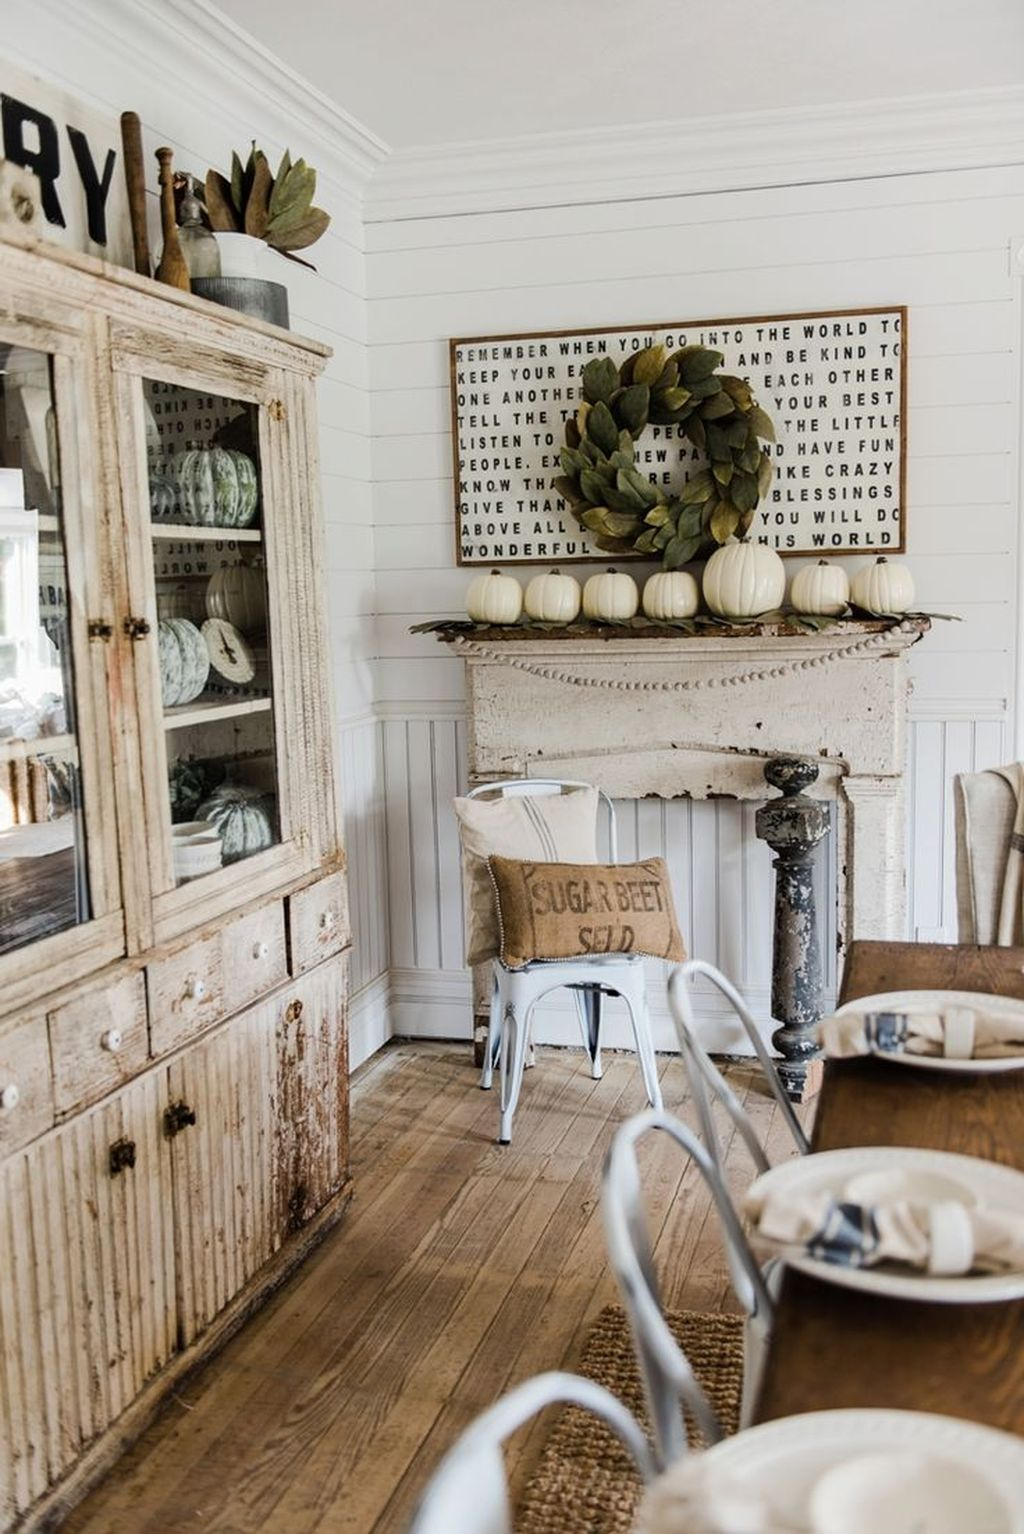 88 Adorable Farmhouse Fall Decor Ideas for